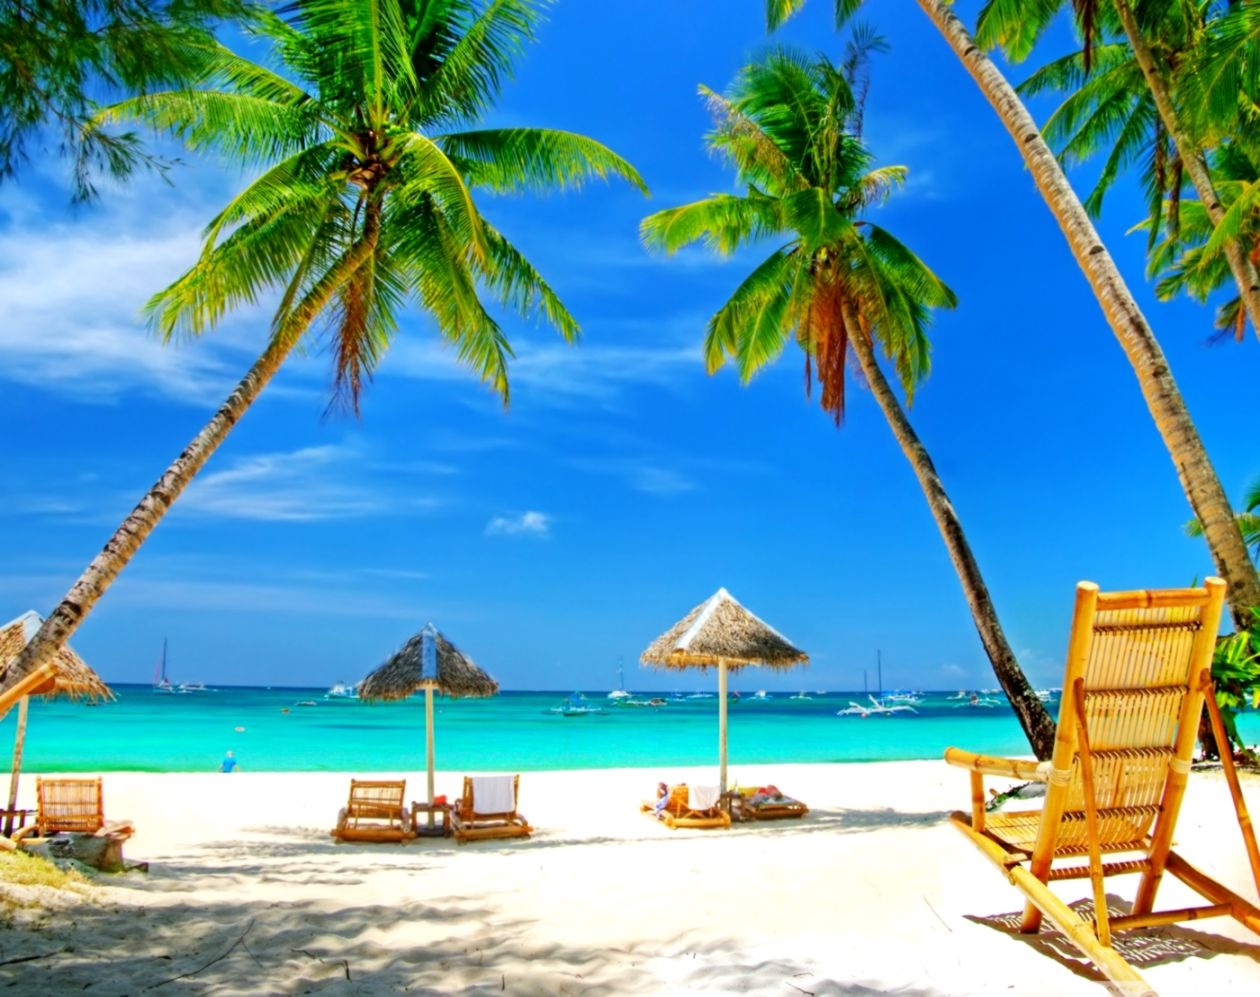 Tropical Paradise Beach 4k Hd Desktop Wallpaper For ...